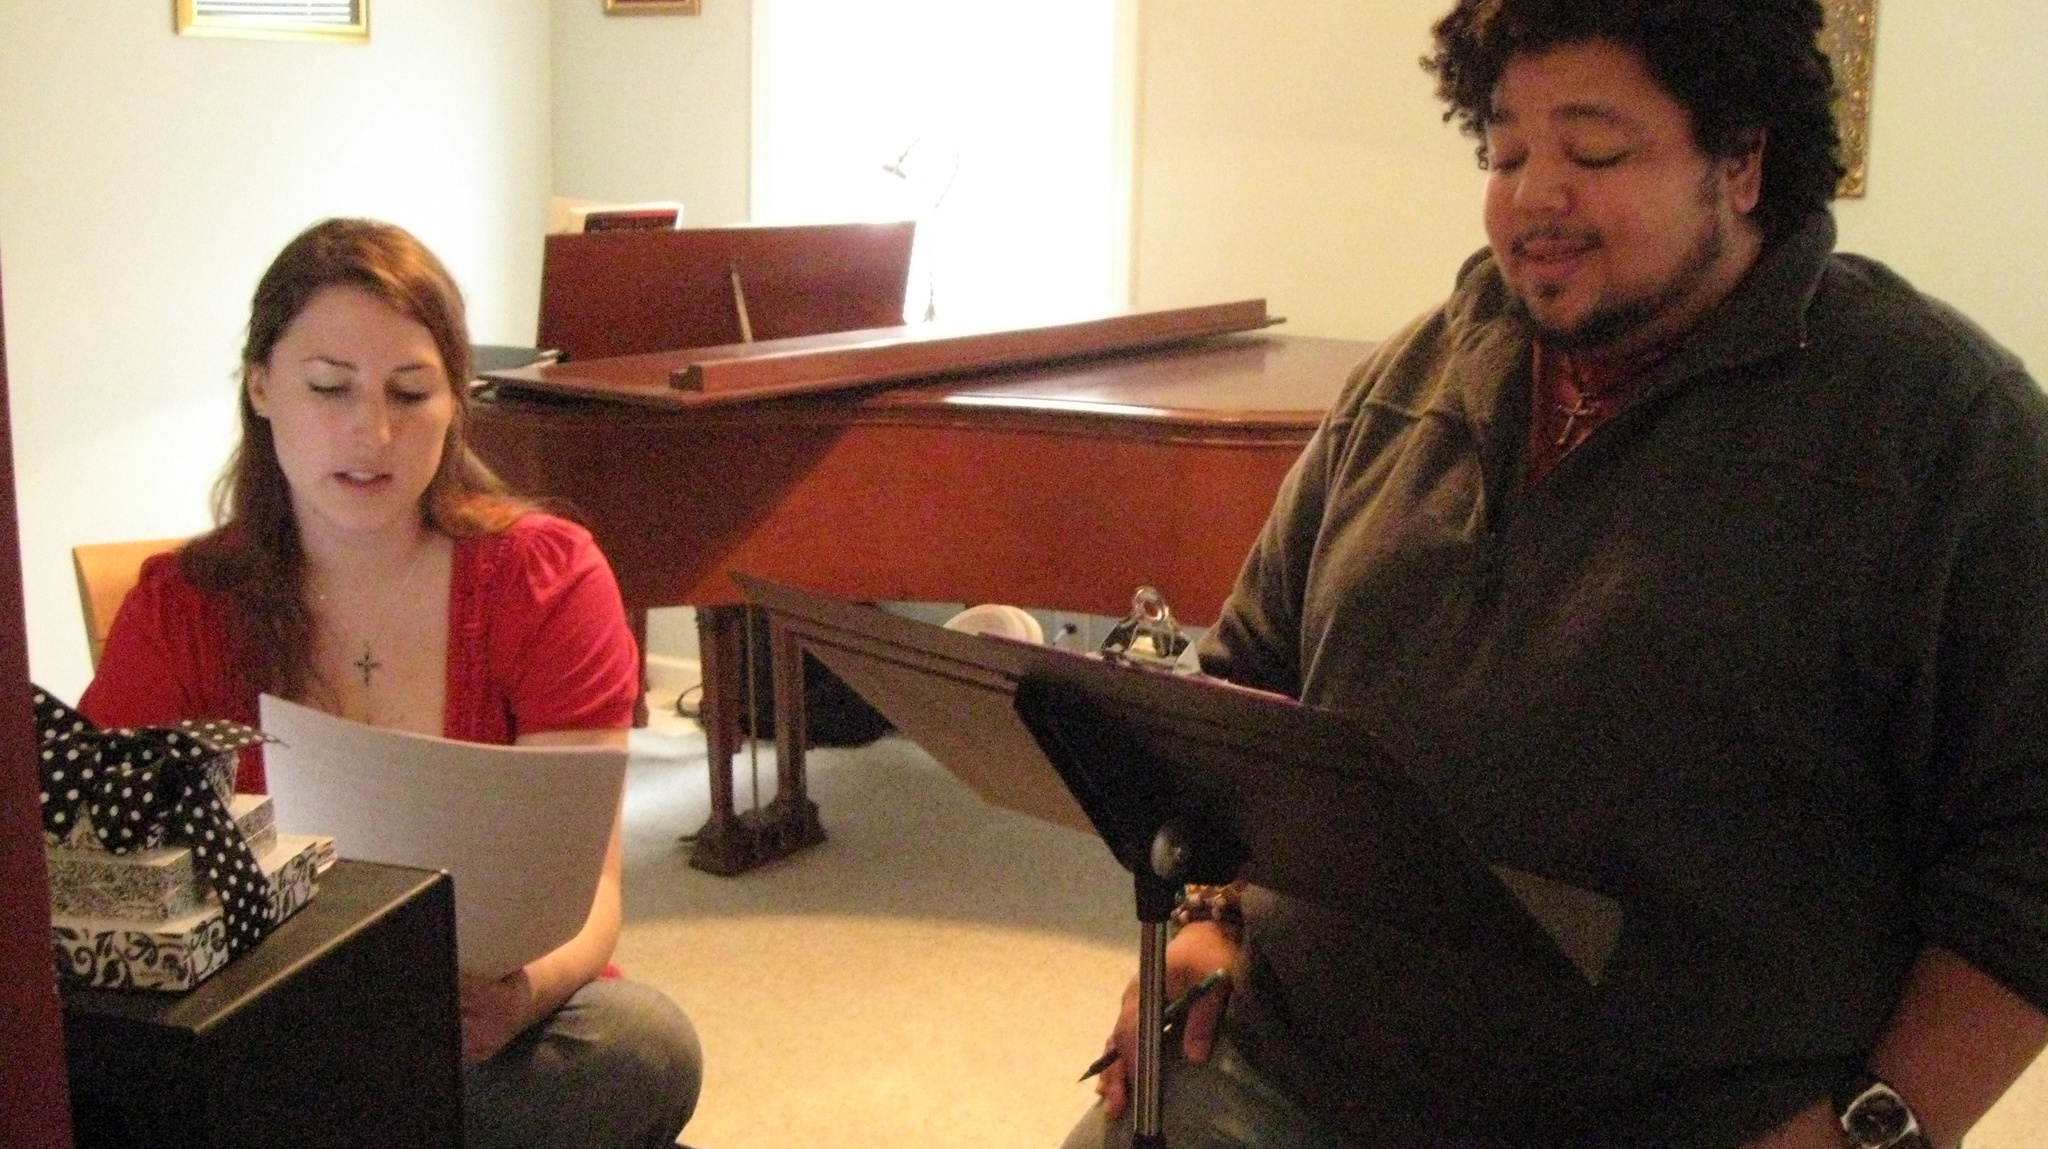 Monti with Erica Lane (amazing voice), practicing for upcoming session